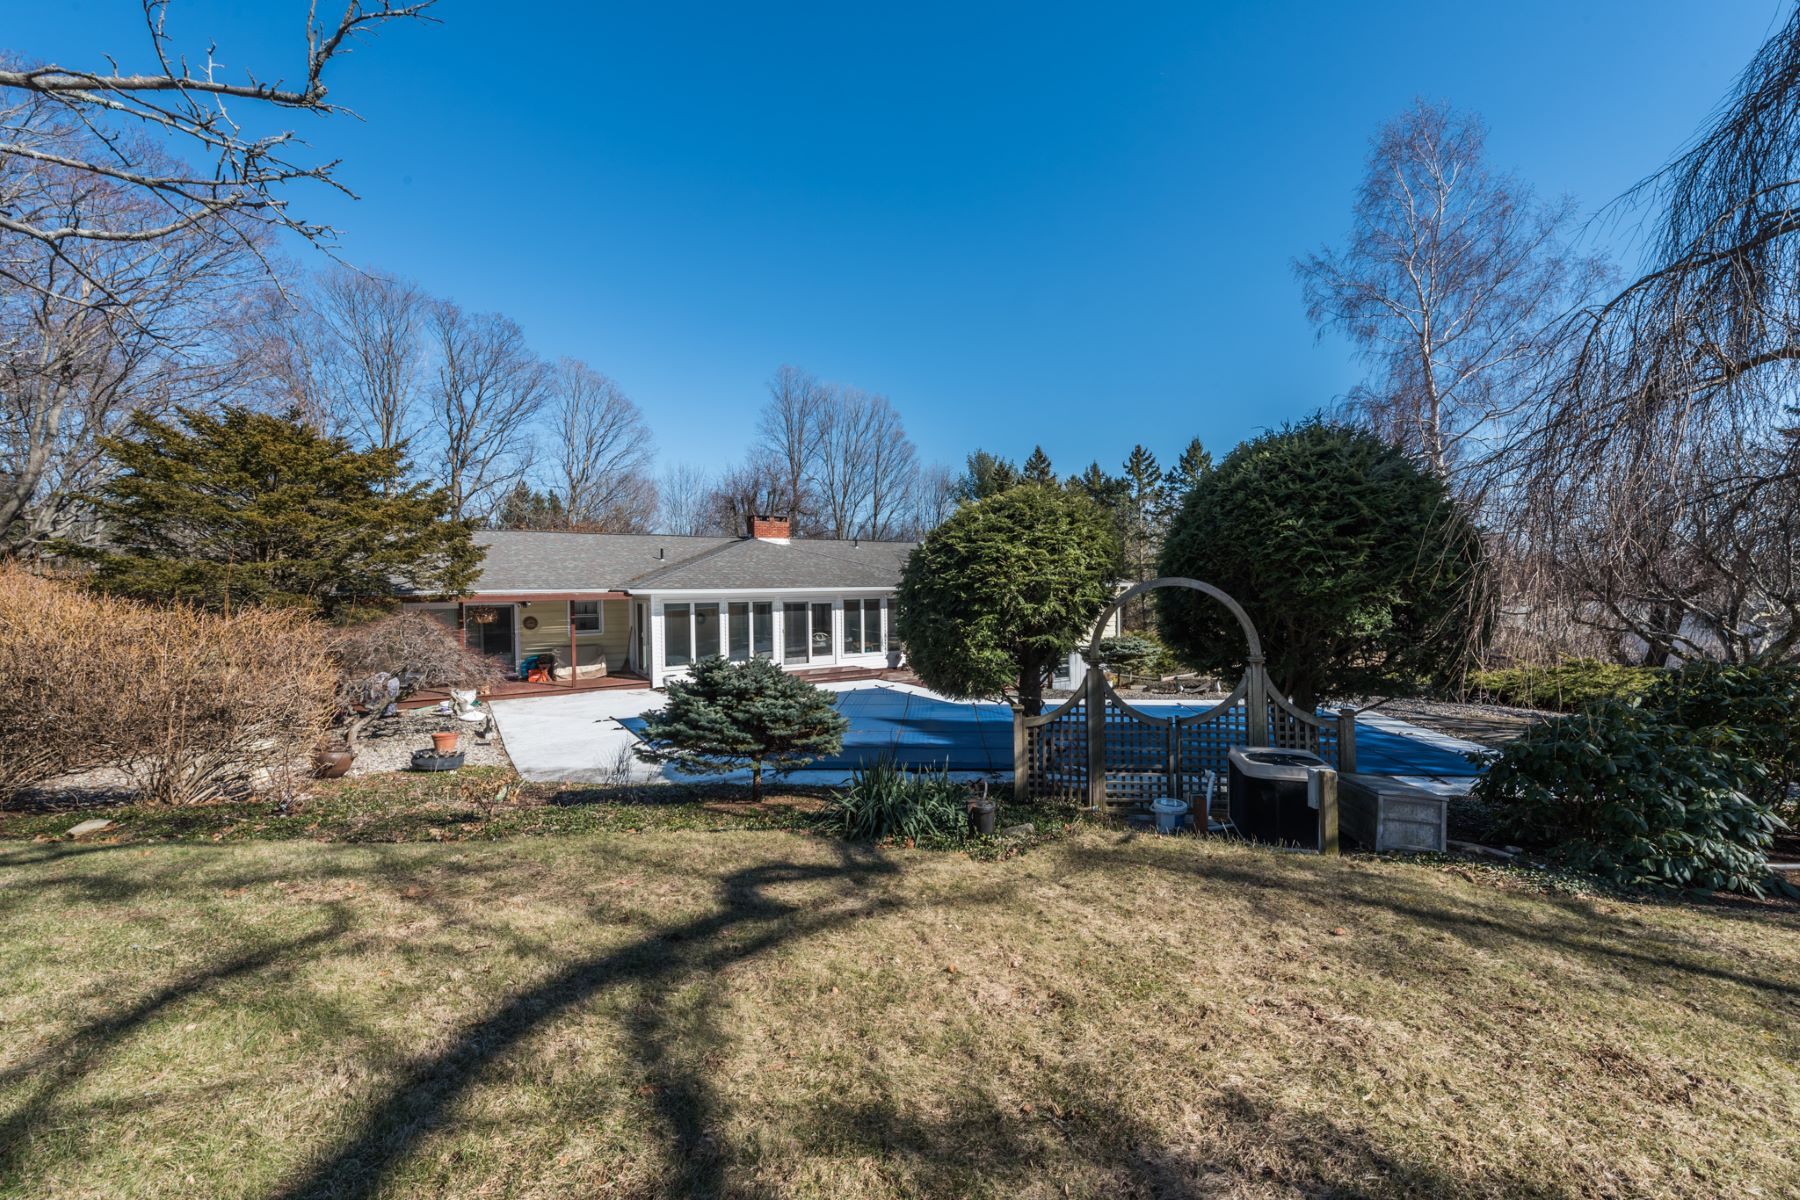 Single Family Home for Sale at Spacious And Bright 76b Clapboard Ridge Rd, Danbury, Connecticut, 06811 United States